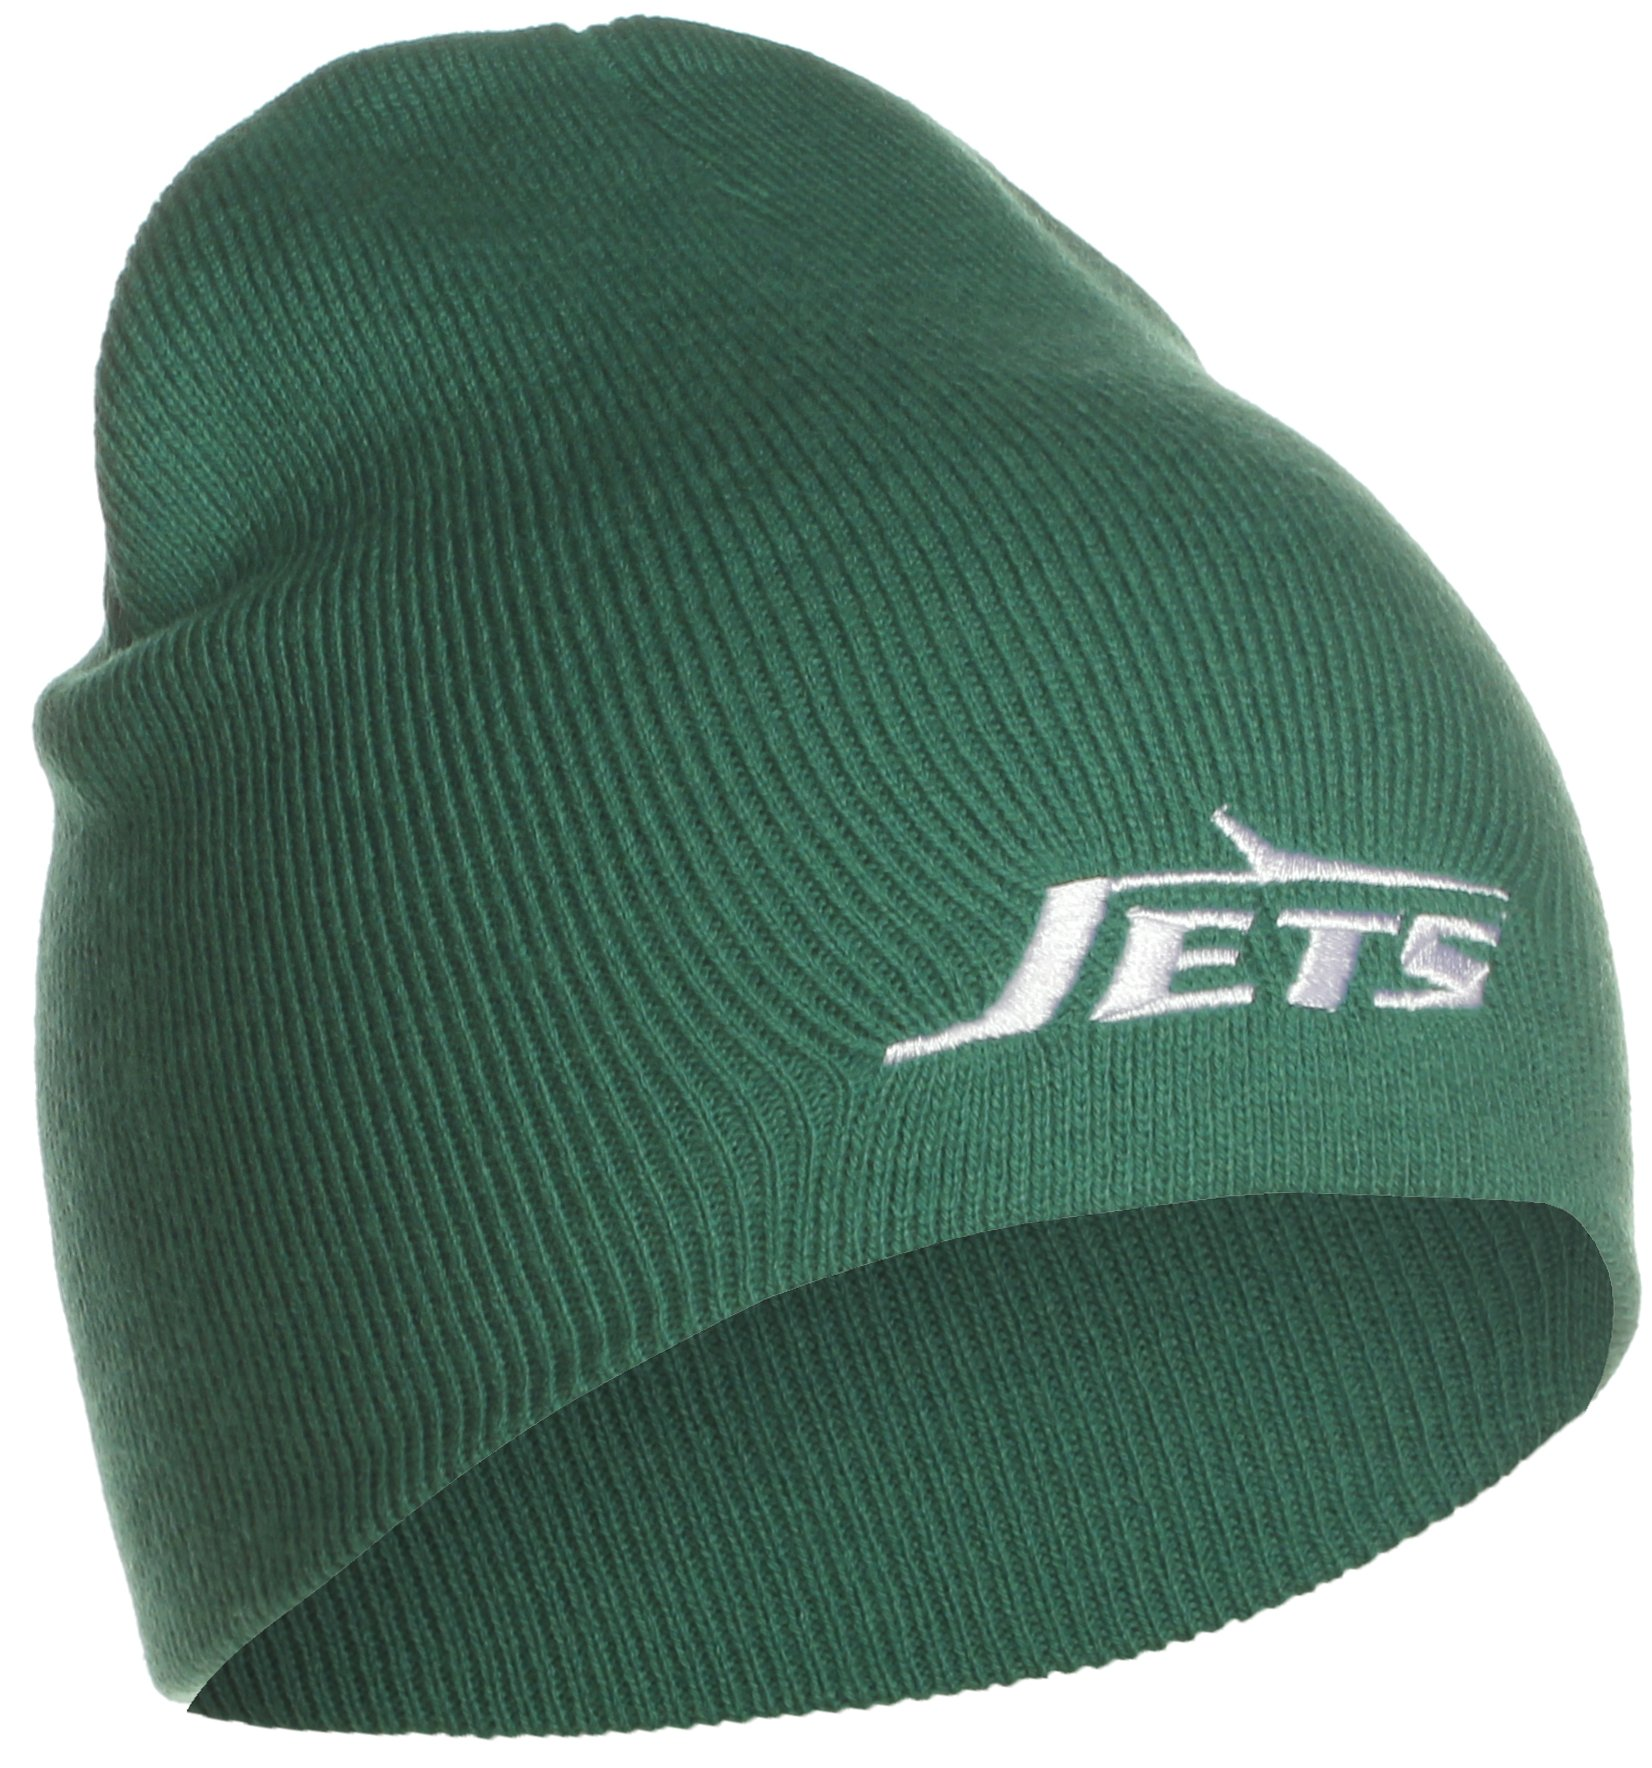 9a70db812 Get Quotations · NEW YORK JETS (GREEN) Cuffed Knit Beanie Hat   Toque-  Embroidered Team Logo